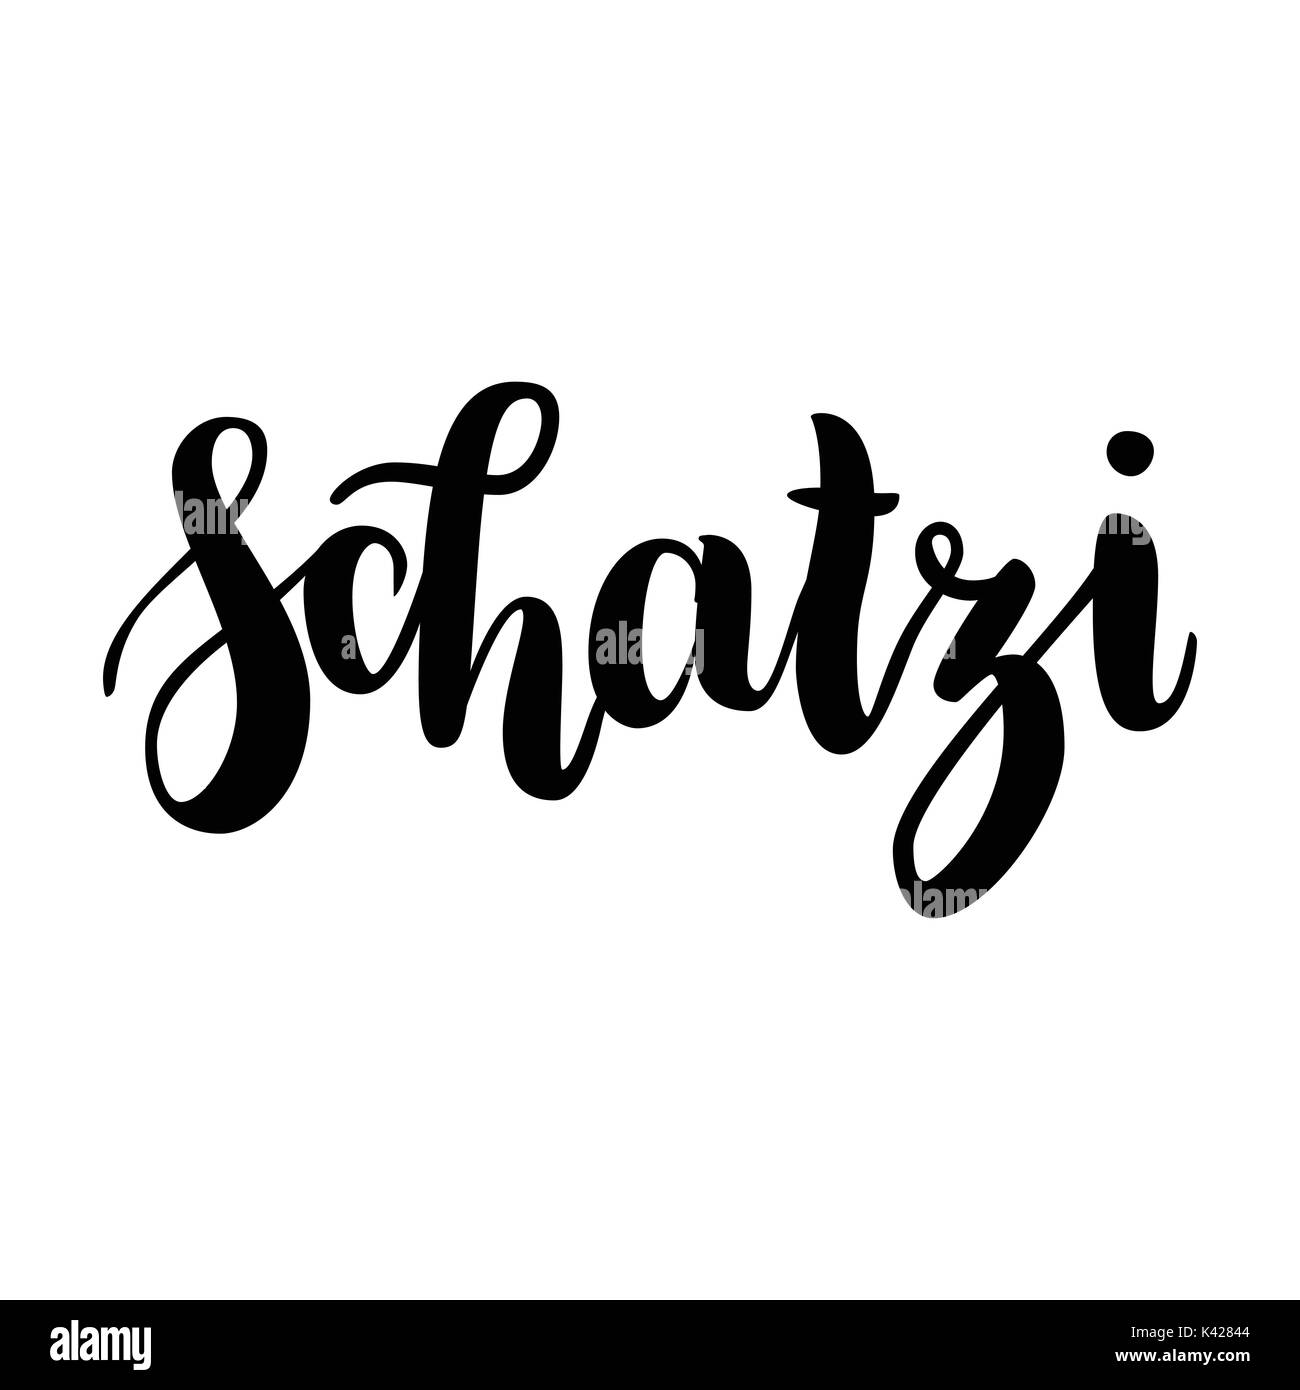 schatzi - sweetheart in German. Happy Valentines day card, Hand-written lettering isolated on white. Vector illustration. - Stock Image